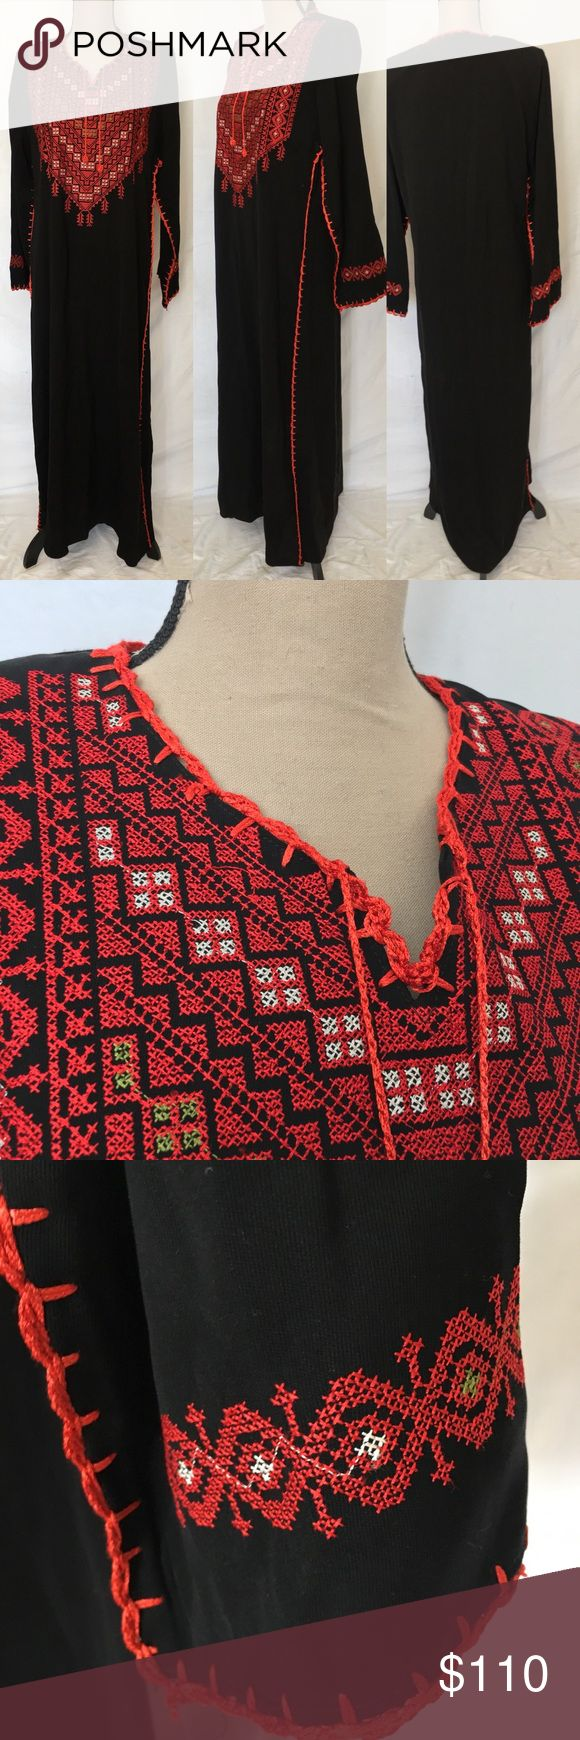 """Embroidered Boho Peasant Long Kaftan Maxi Dress Embroidered Boho Peasant Black Red Long Kaftan Maxi Dress Womens Medium  Purchased on a vacation and never used. Paid over $200. No markers label or sizing.  Quality material - feels like a wool blend but not itchy. Embroidered yoke and cuffs.  Has shoulder pads which could be easily removed by buyer.  Please review measurements below carefully prior to purchasing:  LENGTH 54"""" HIPS 42"""" all around  UNDERARM TO UNDERARM 21"""" SLEEVES 24"""" Dresses…"""